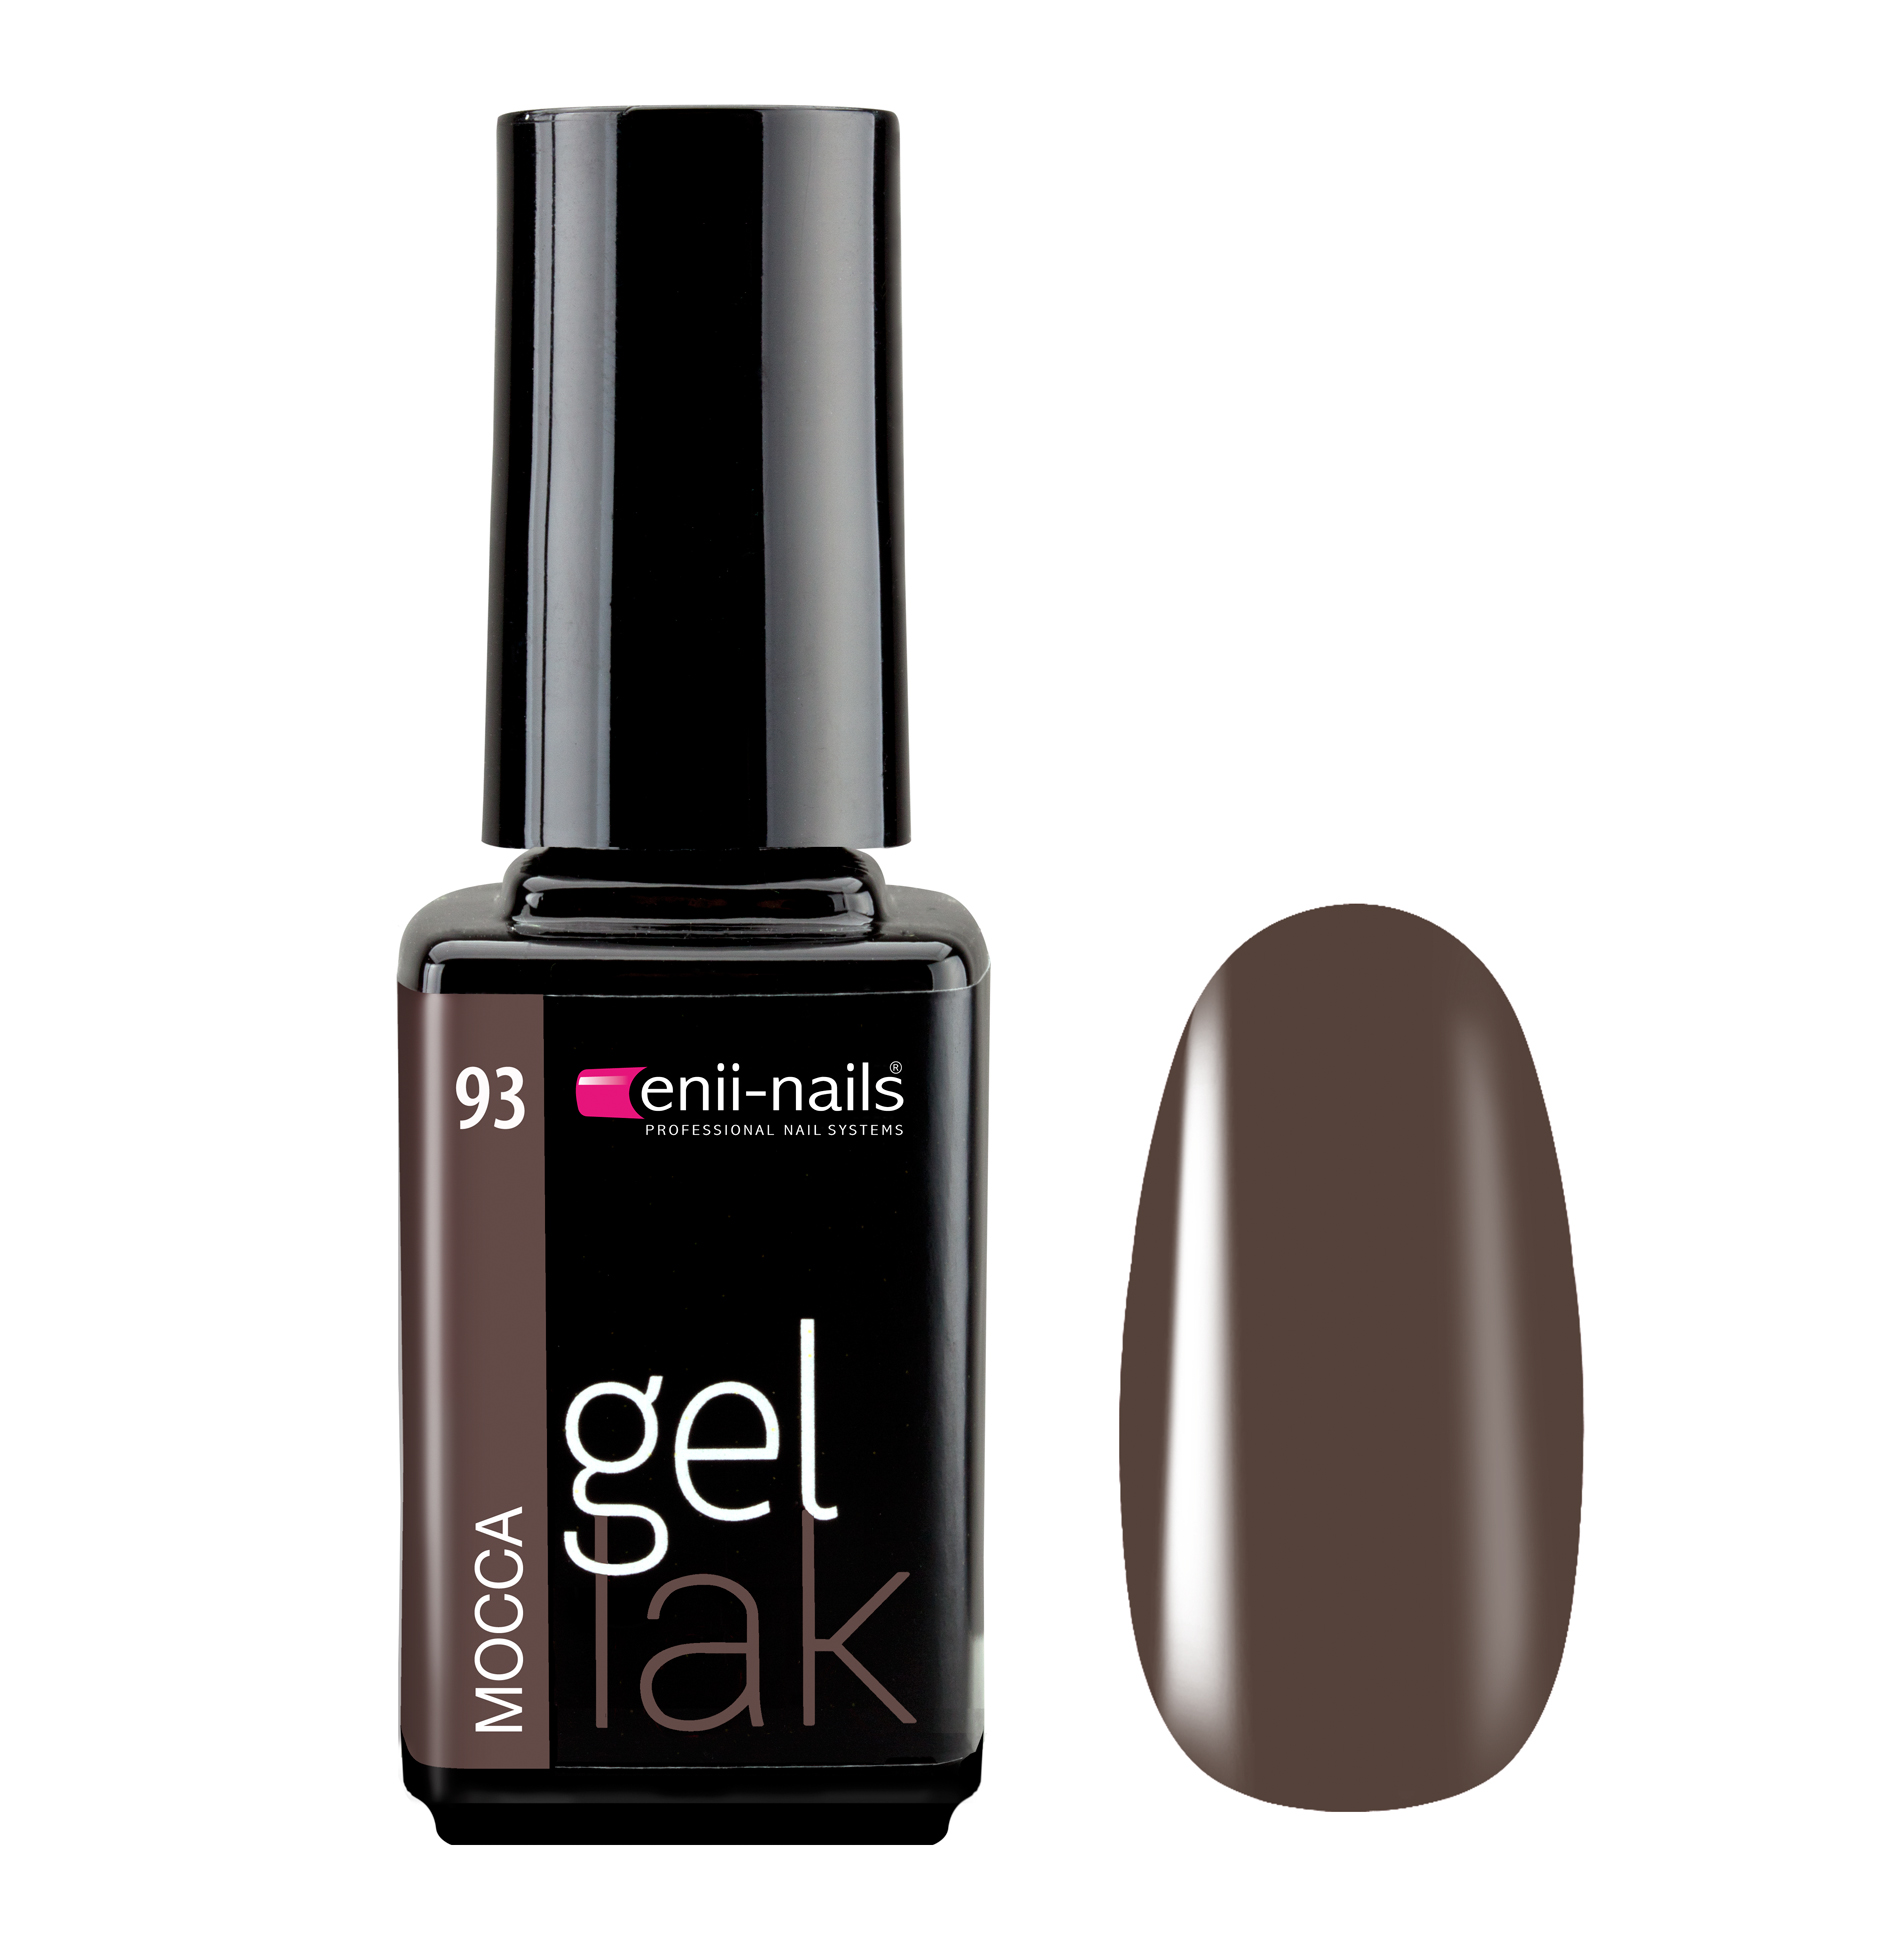 ENII-NAILS Gel lak Mocca 5 ml